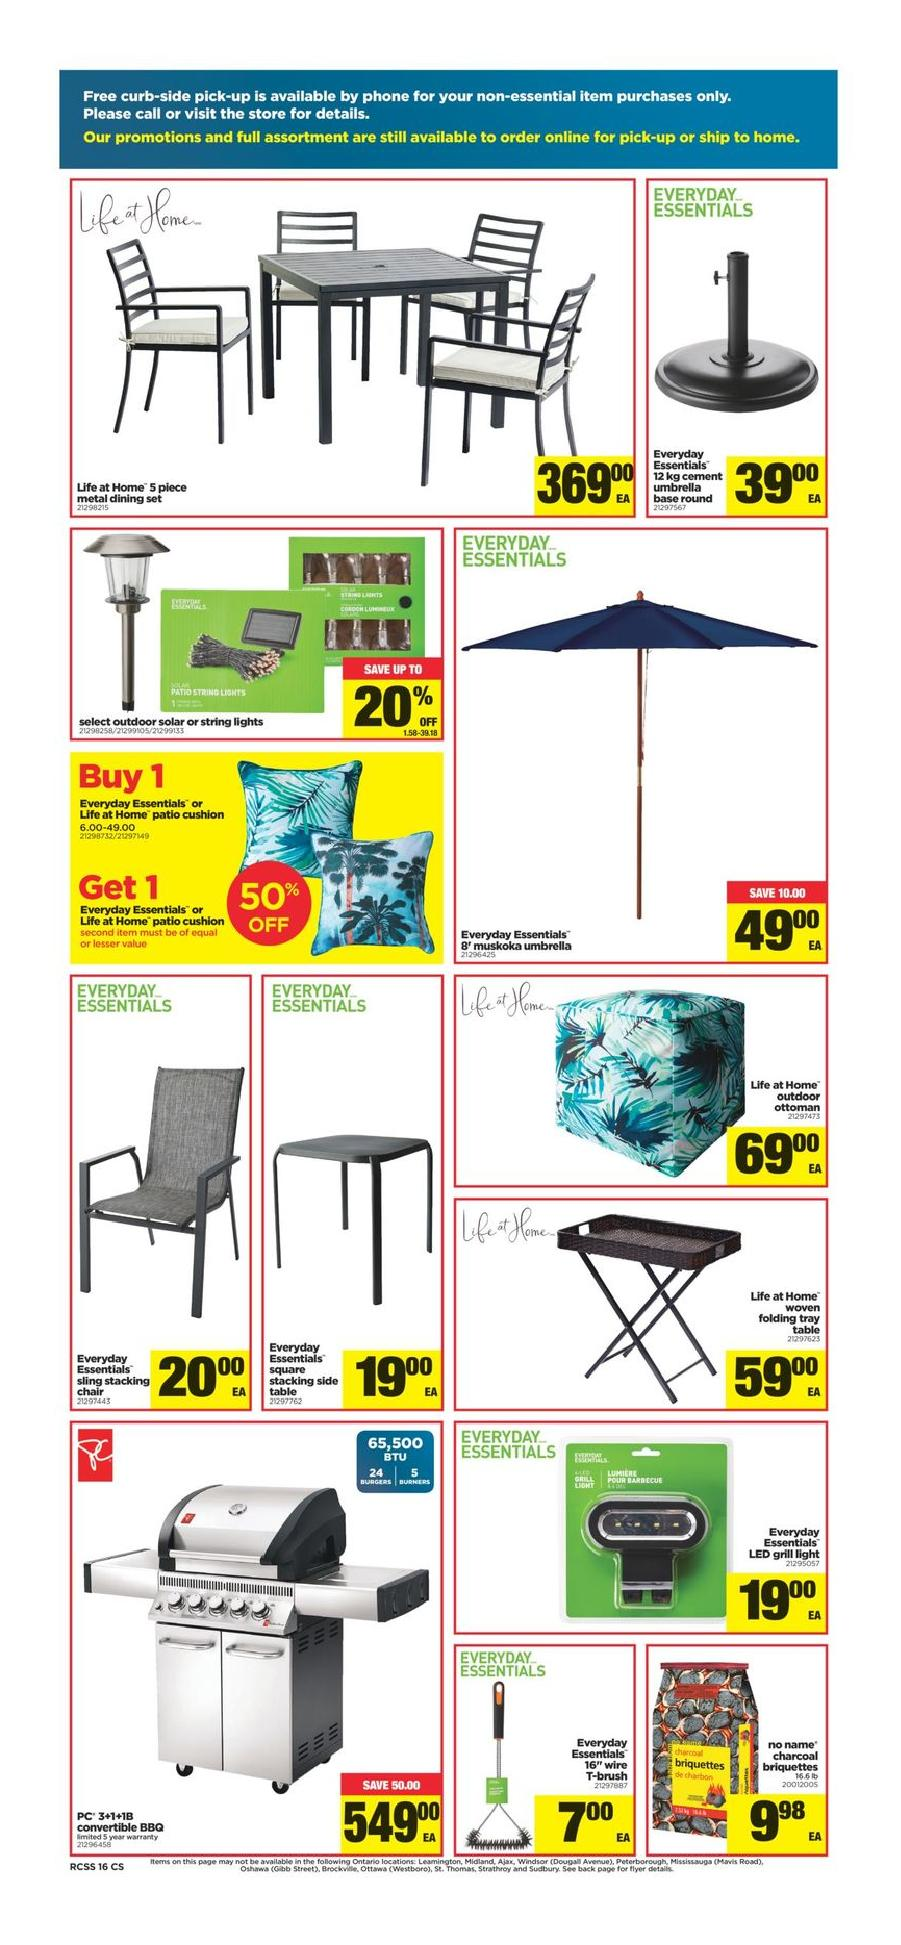 21 Superstore ON Flyer May 20 May 26 2021